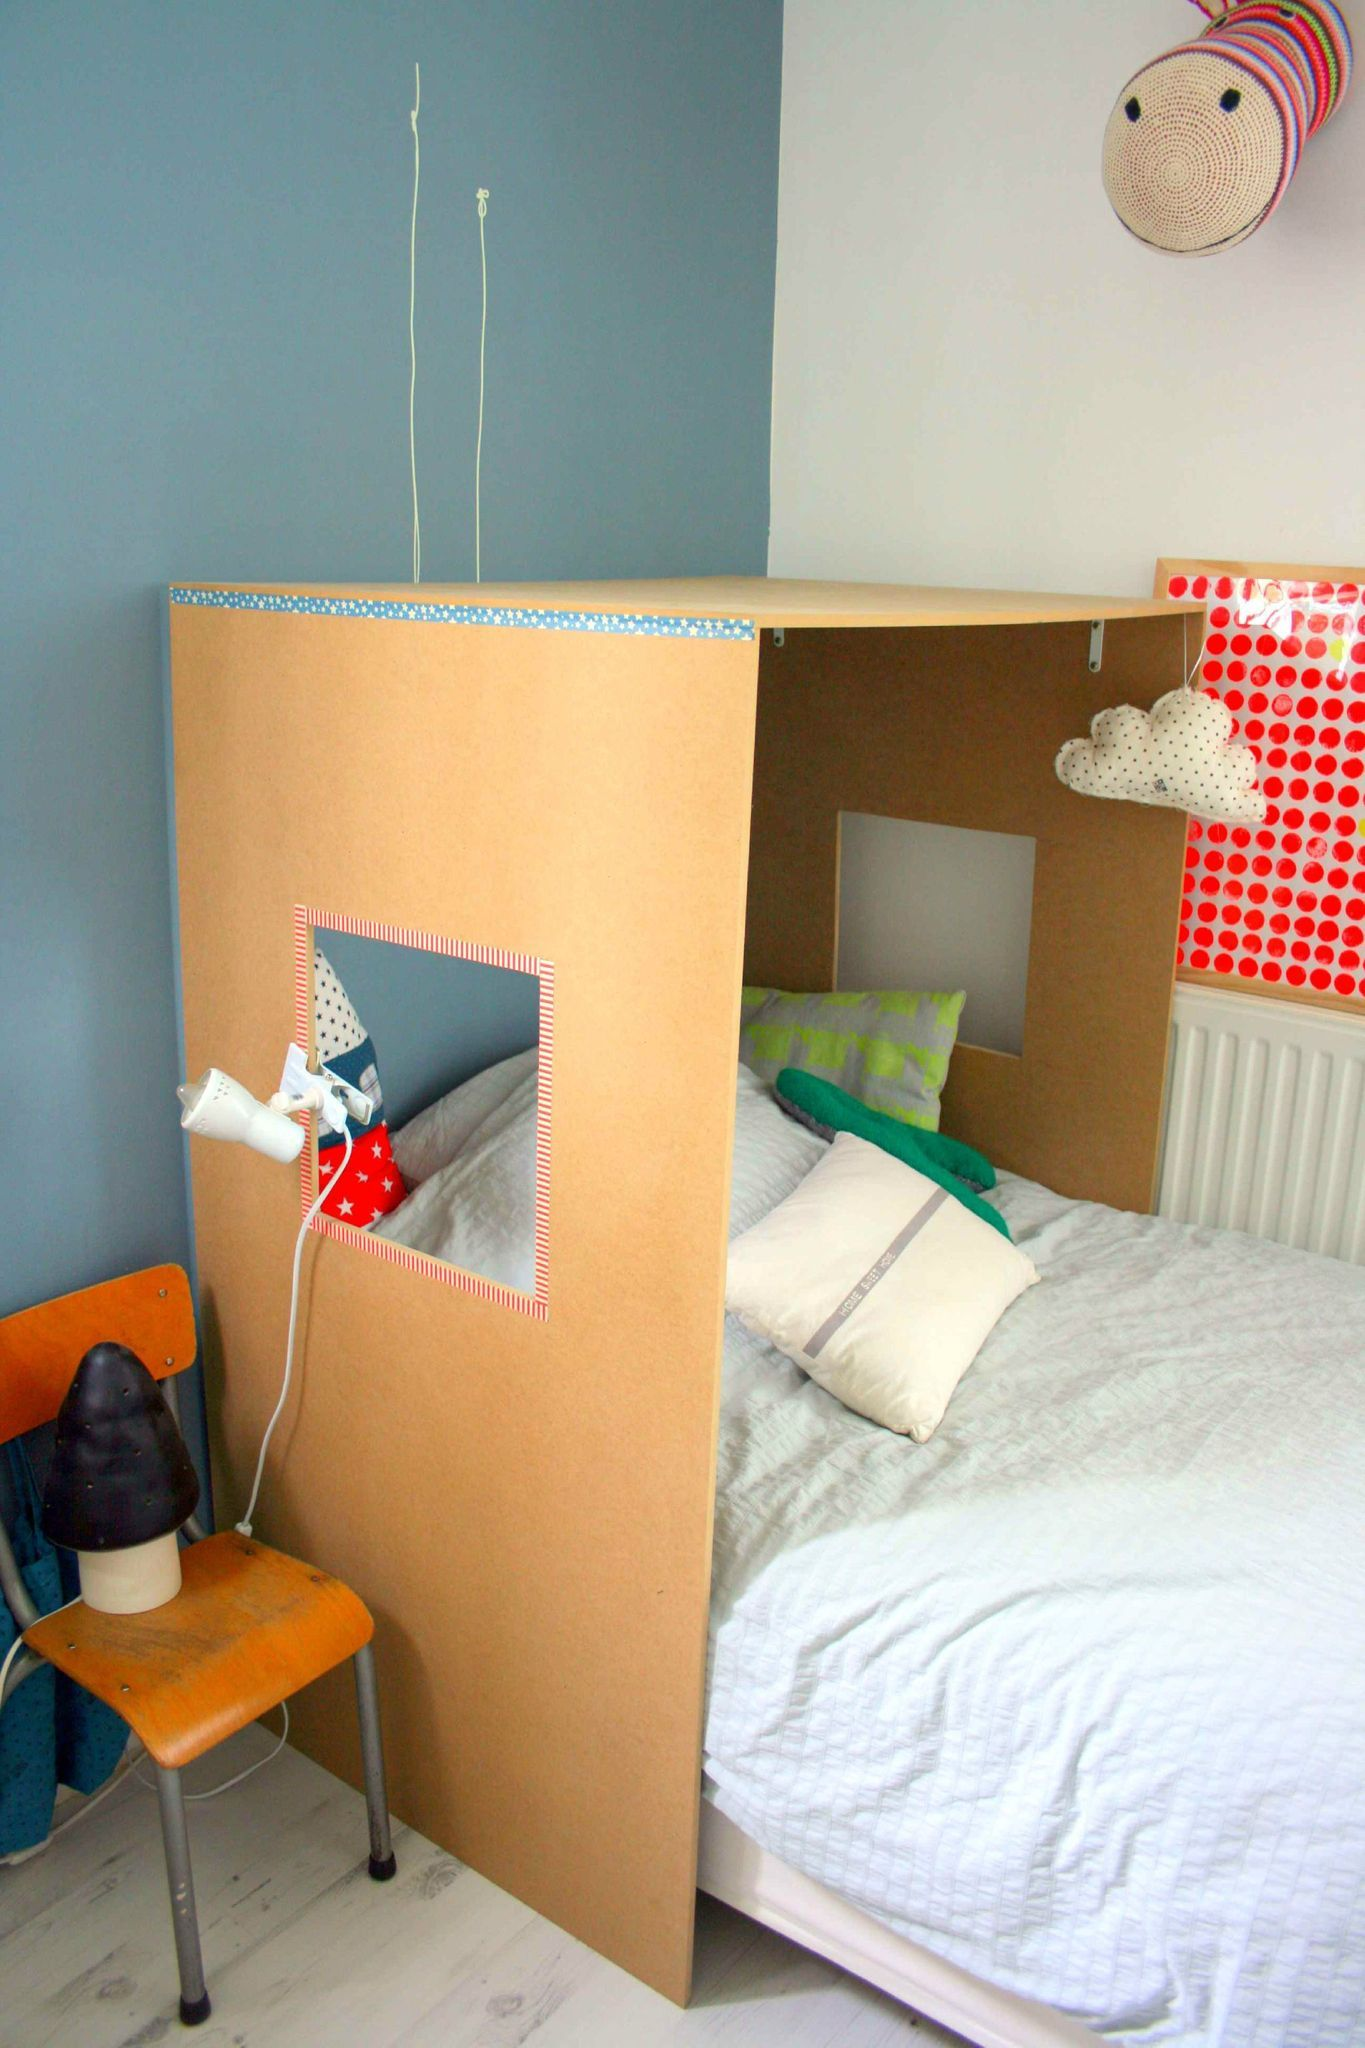 diy lit cabane kartonghus till barnrummet pinterest. Black Bedroom Furniture Sets. Home Design Ideas